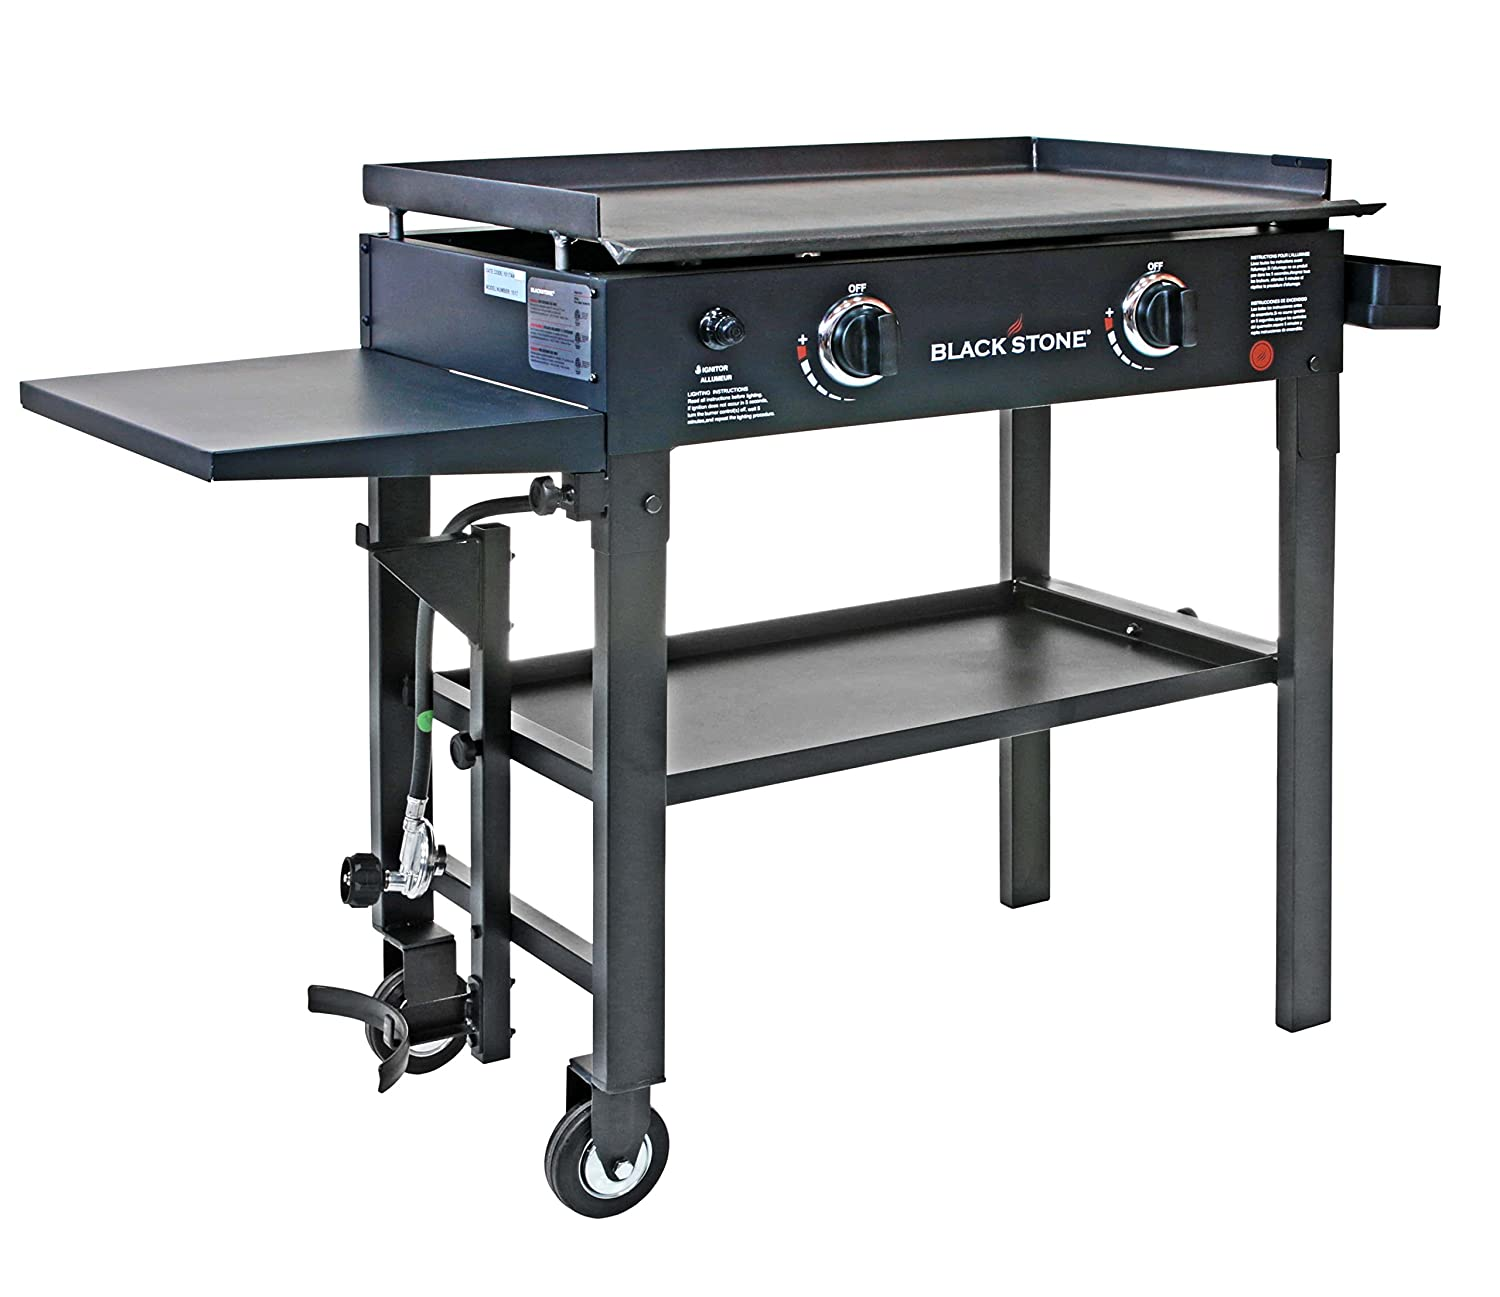 Amazon.com : Blackstone 28 Inch Outdoor Flat Top Gas Grill Griddle Station    2 Burner   Propane Fueled   Restaurant Grade   Professional Quality :  Outdoor ...